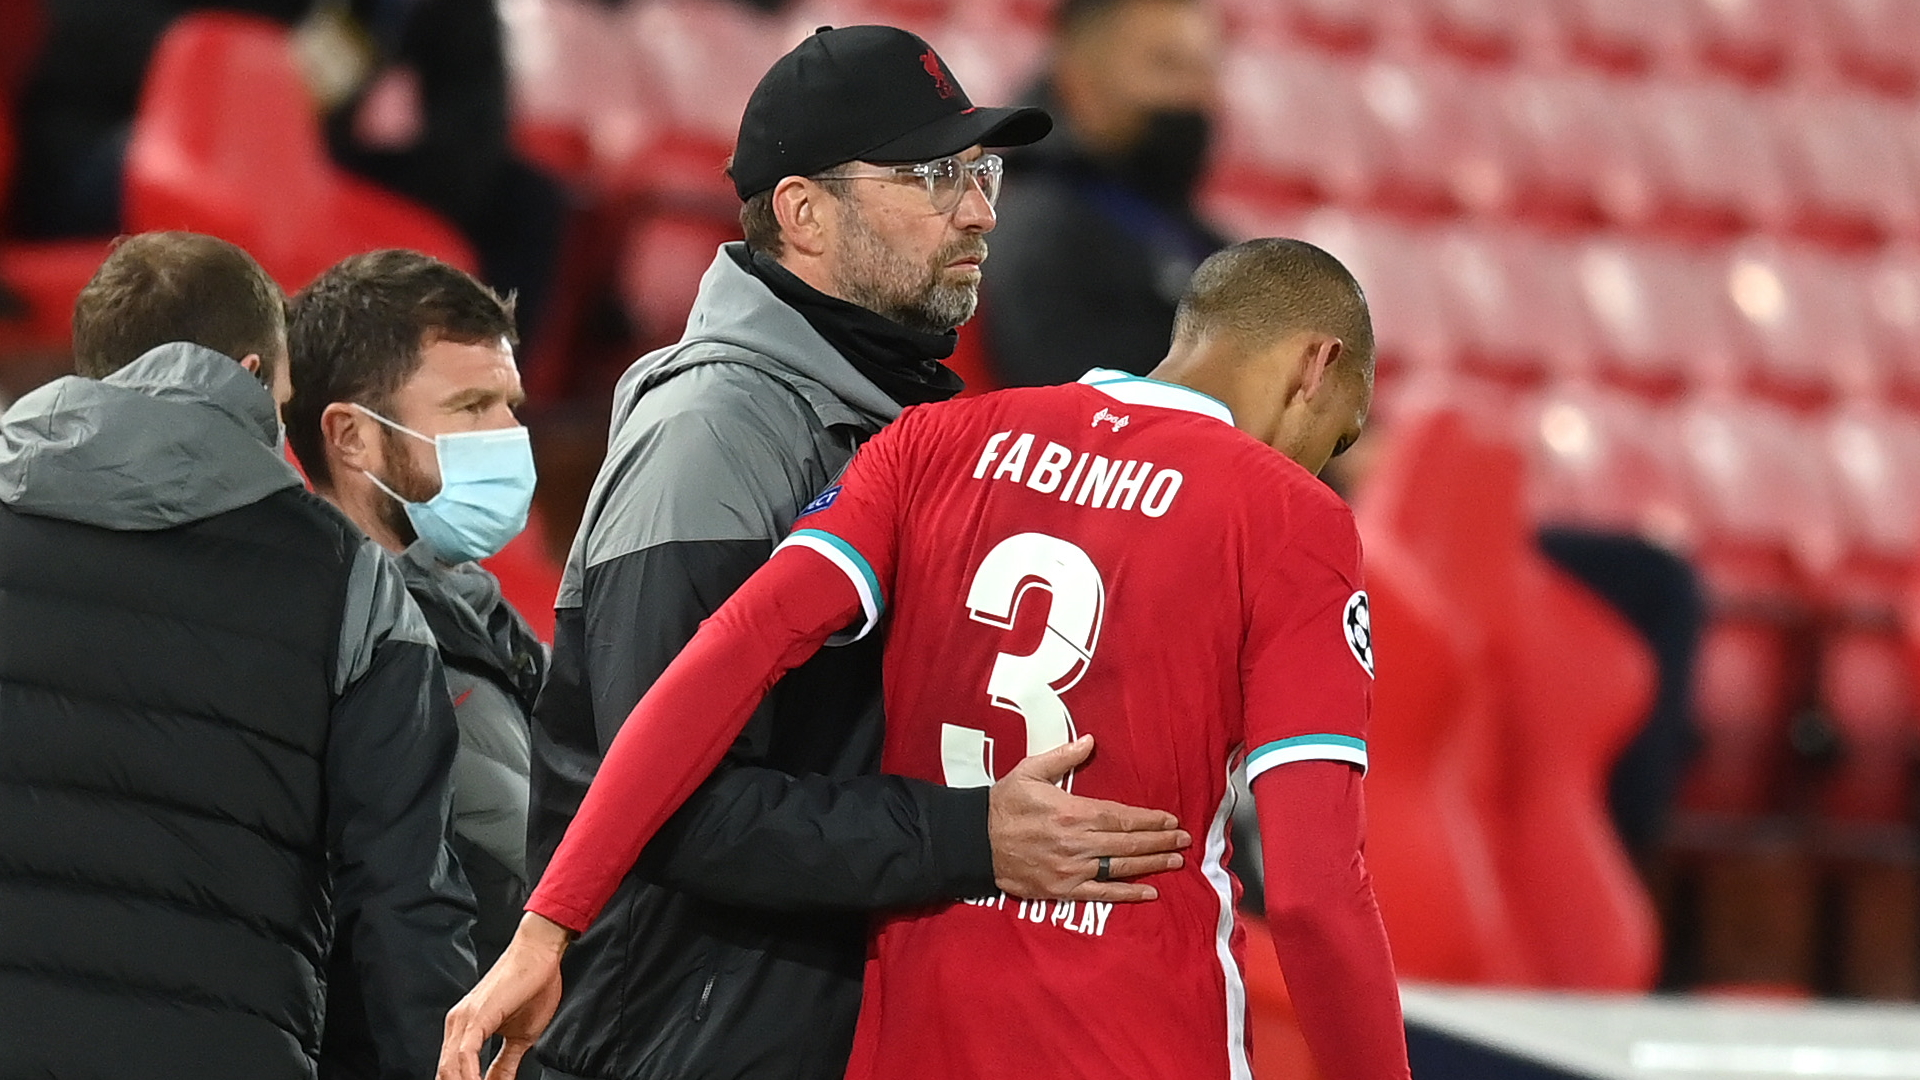 Fabinho withdrawn from Brazil squad in bad injury omen for Liverpool